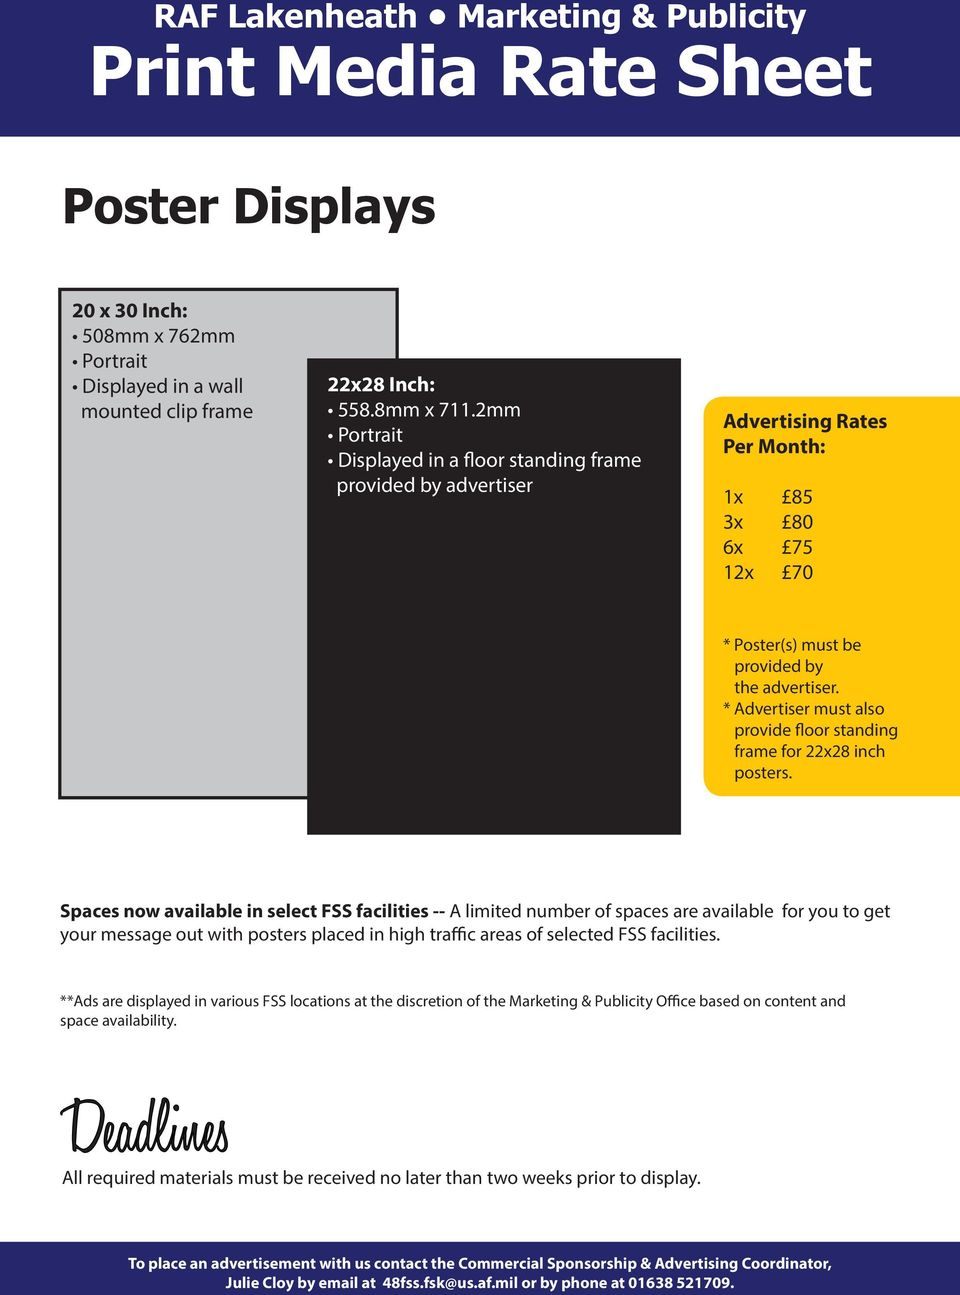 * Advertiser must also provide floor standing frame for 22x28 inch posters.